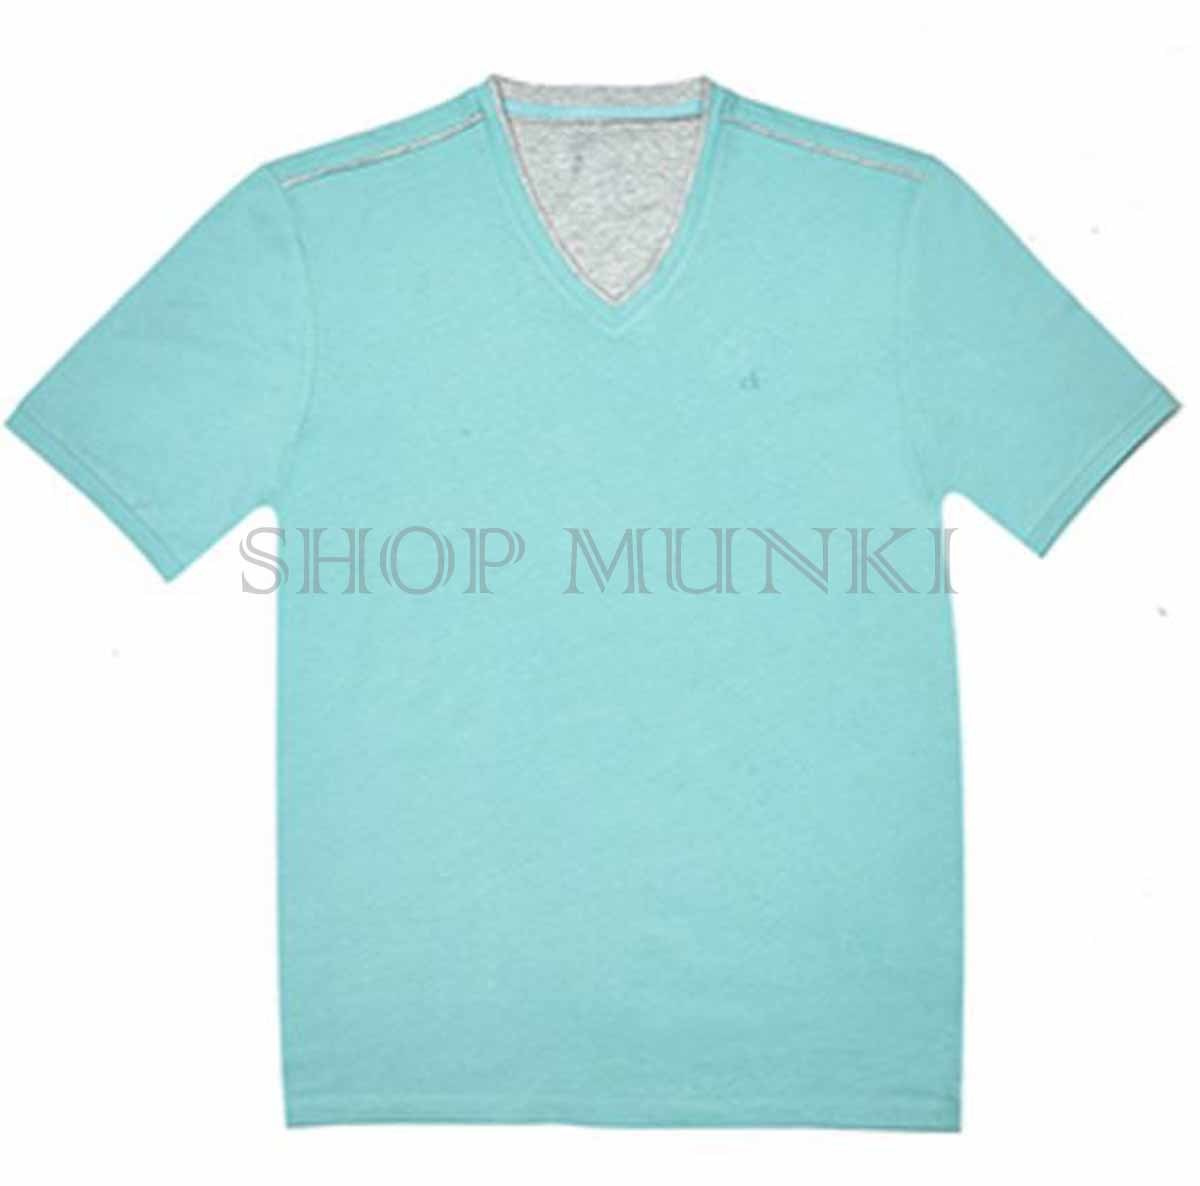 Calvin klein mens pima cotton v neck t shirt ebay for Pima cotton tee shirts